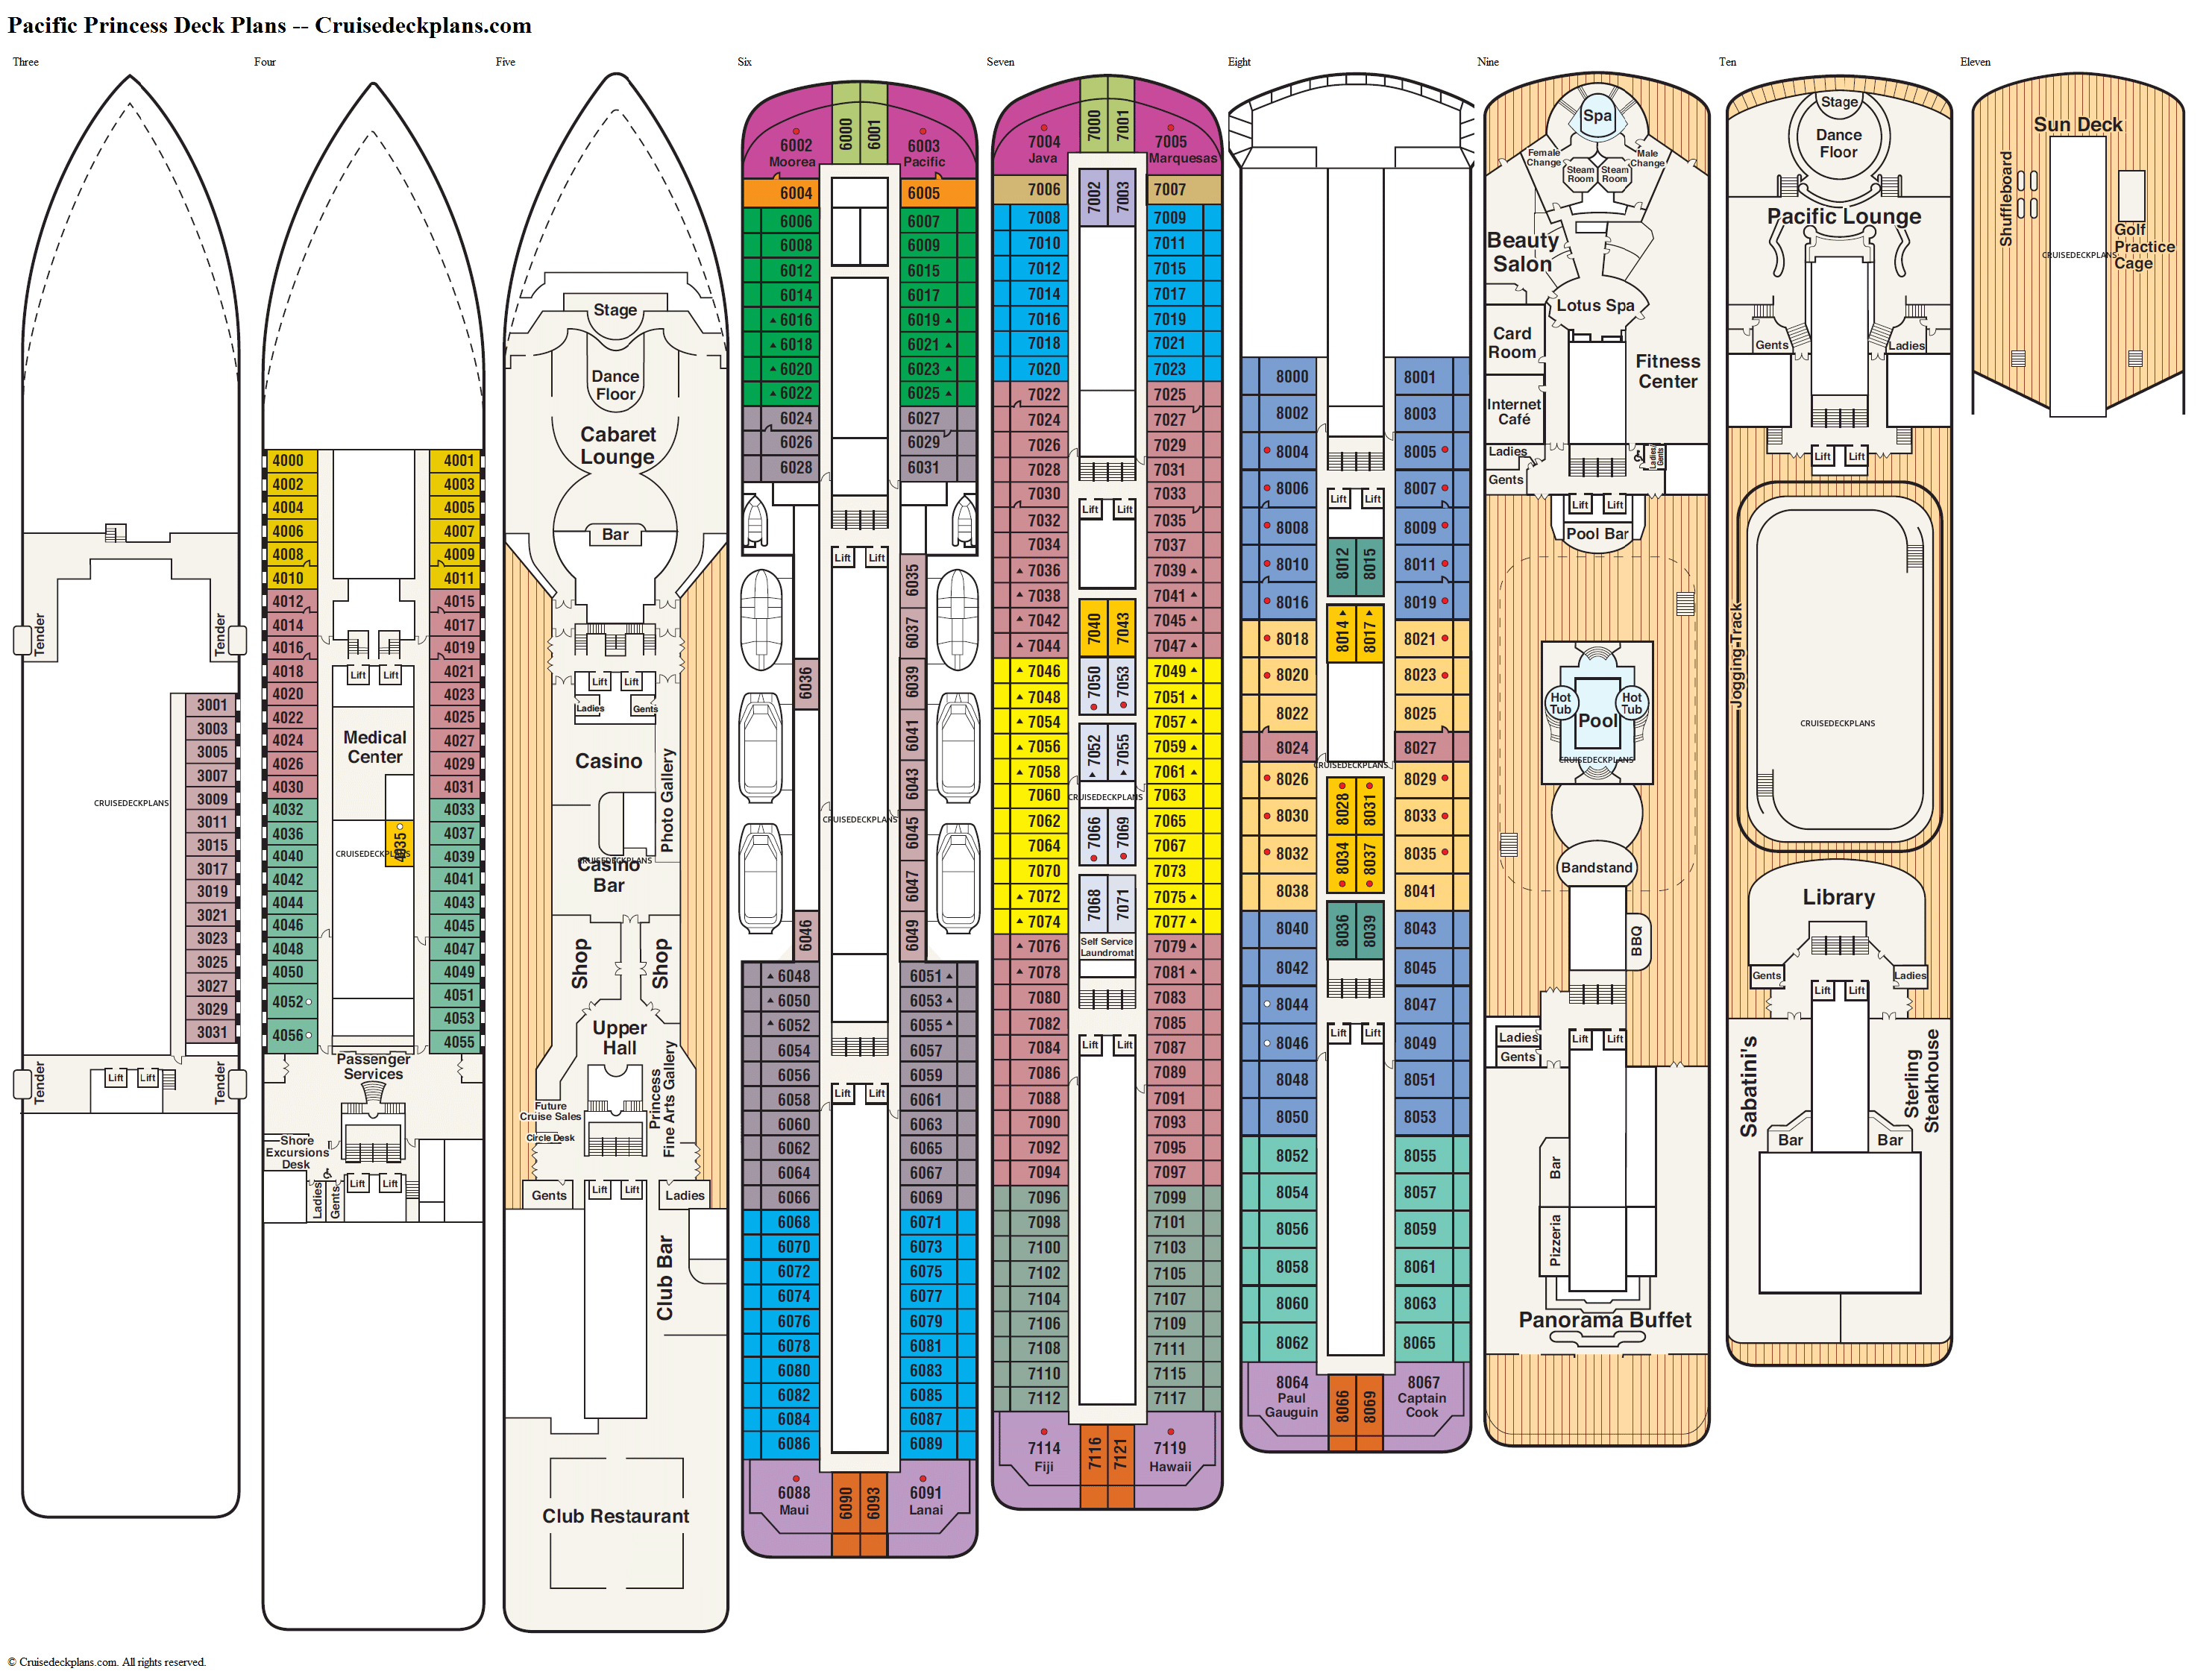 Pacific Princess deck plans image